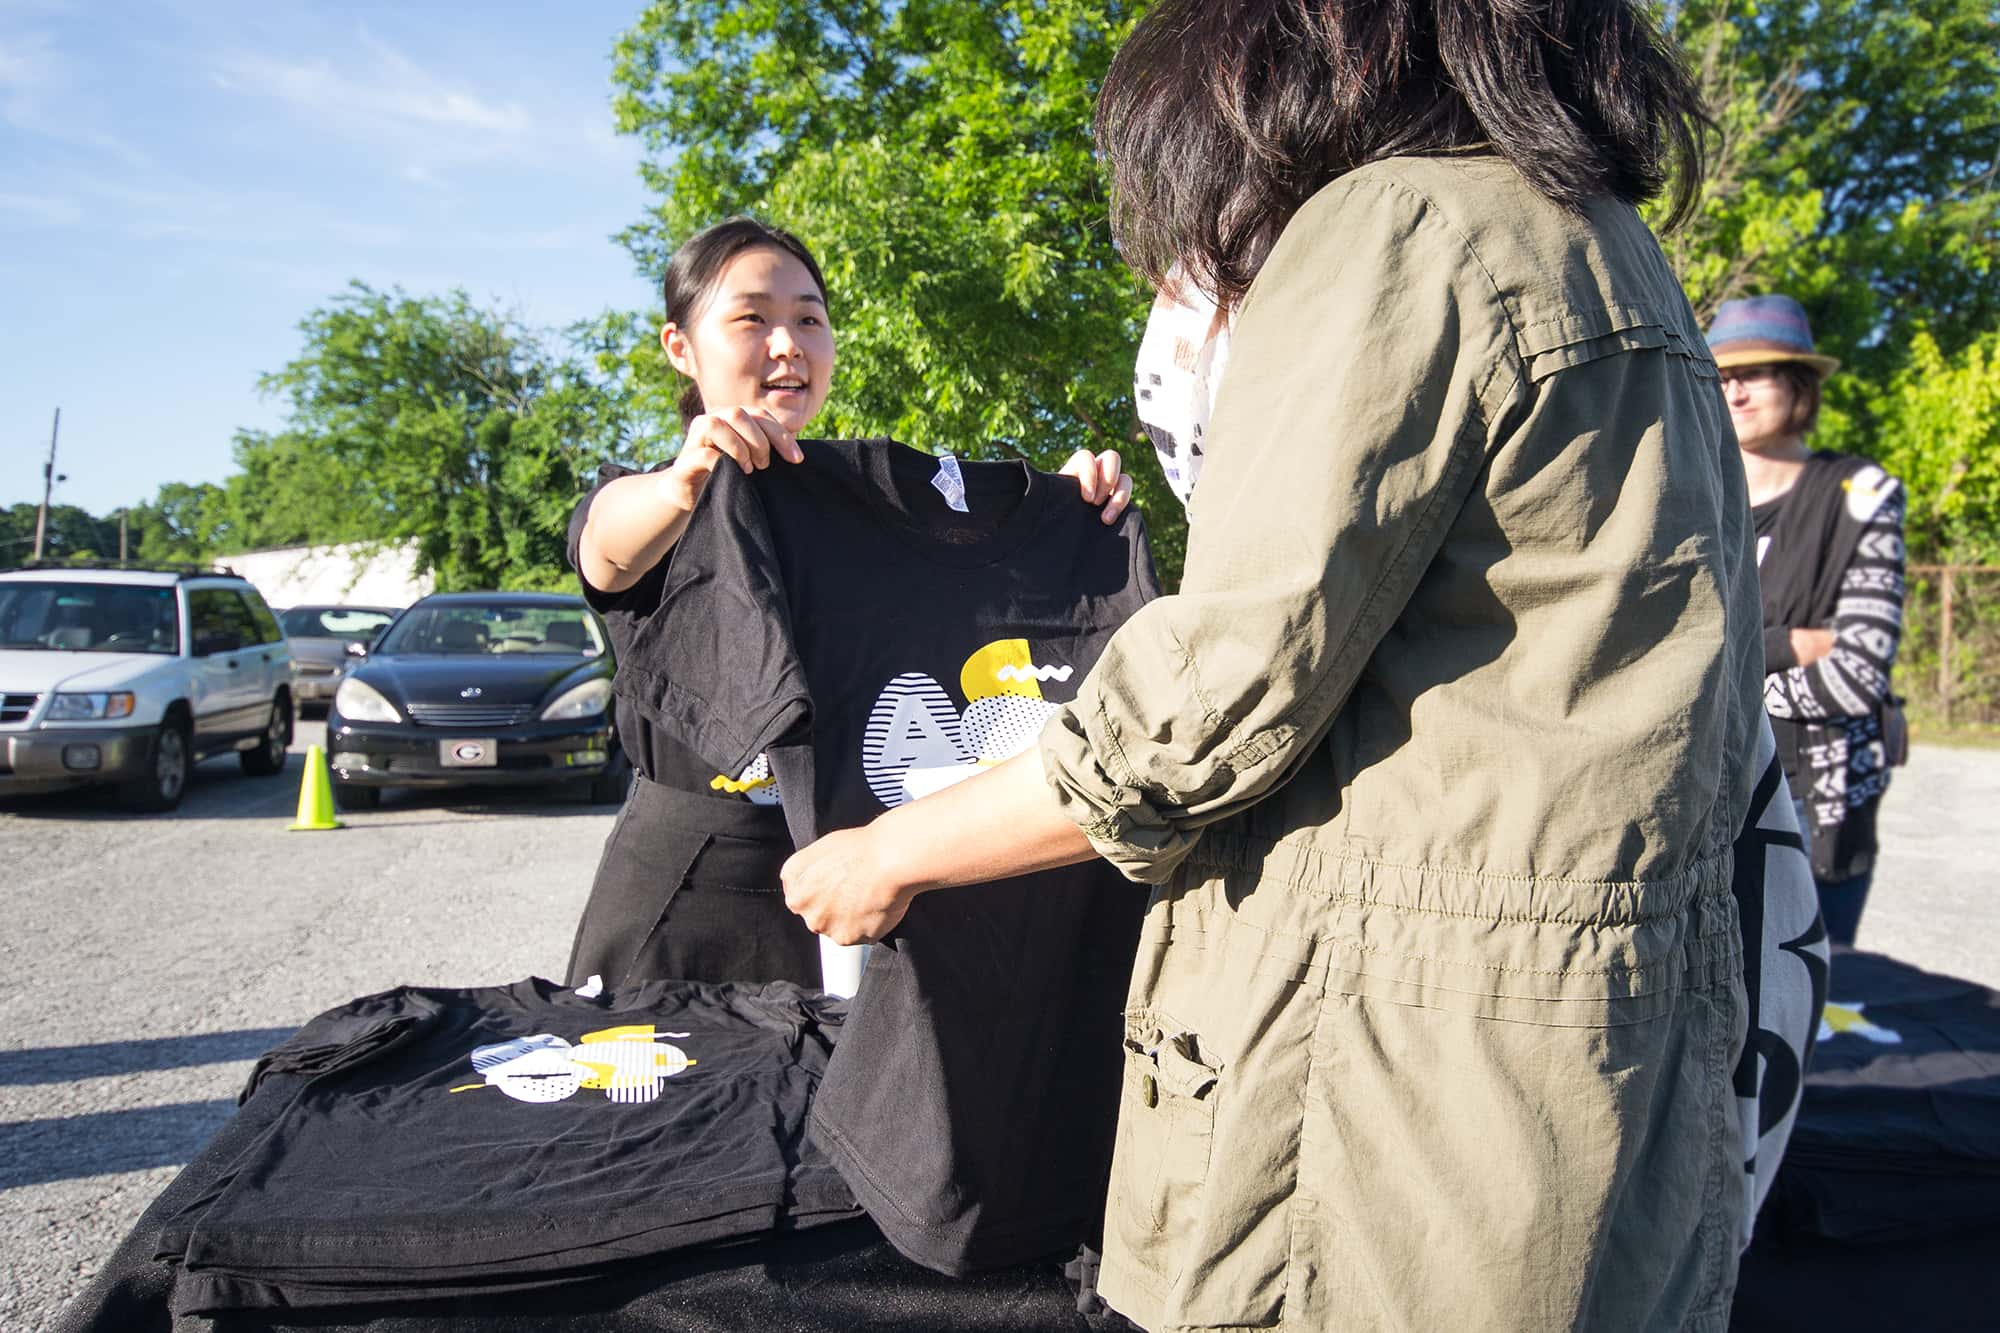 Handing out printed event t-shirts.